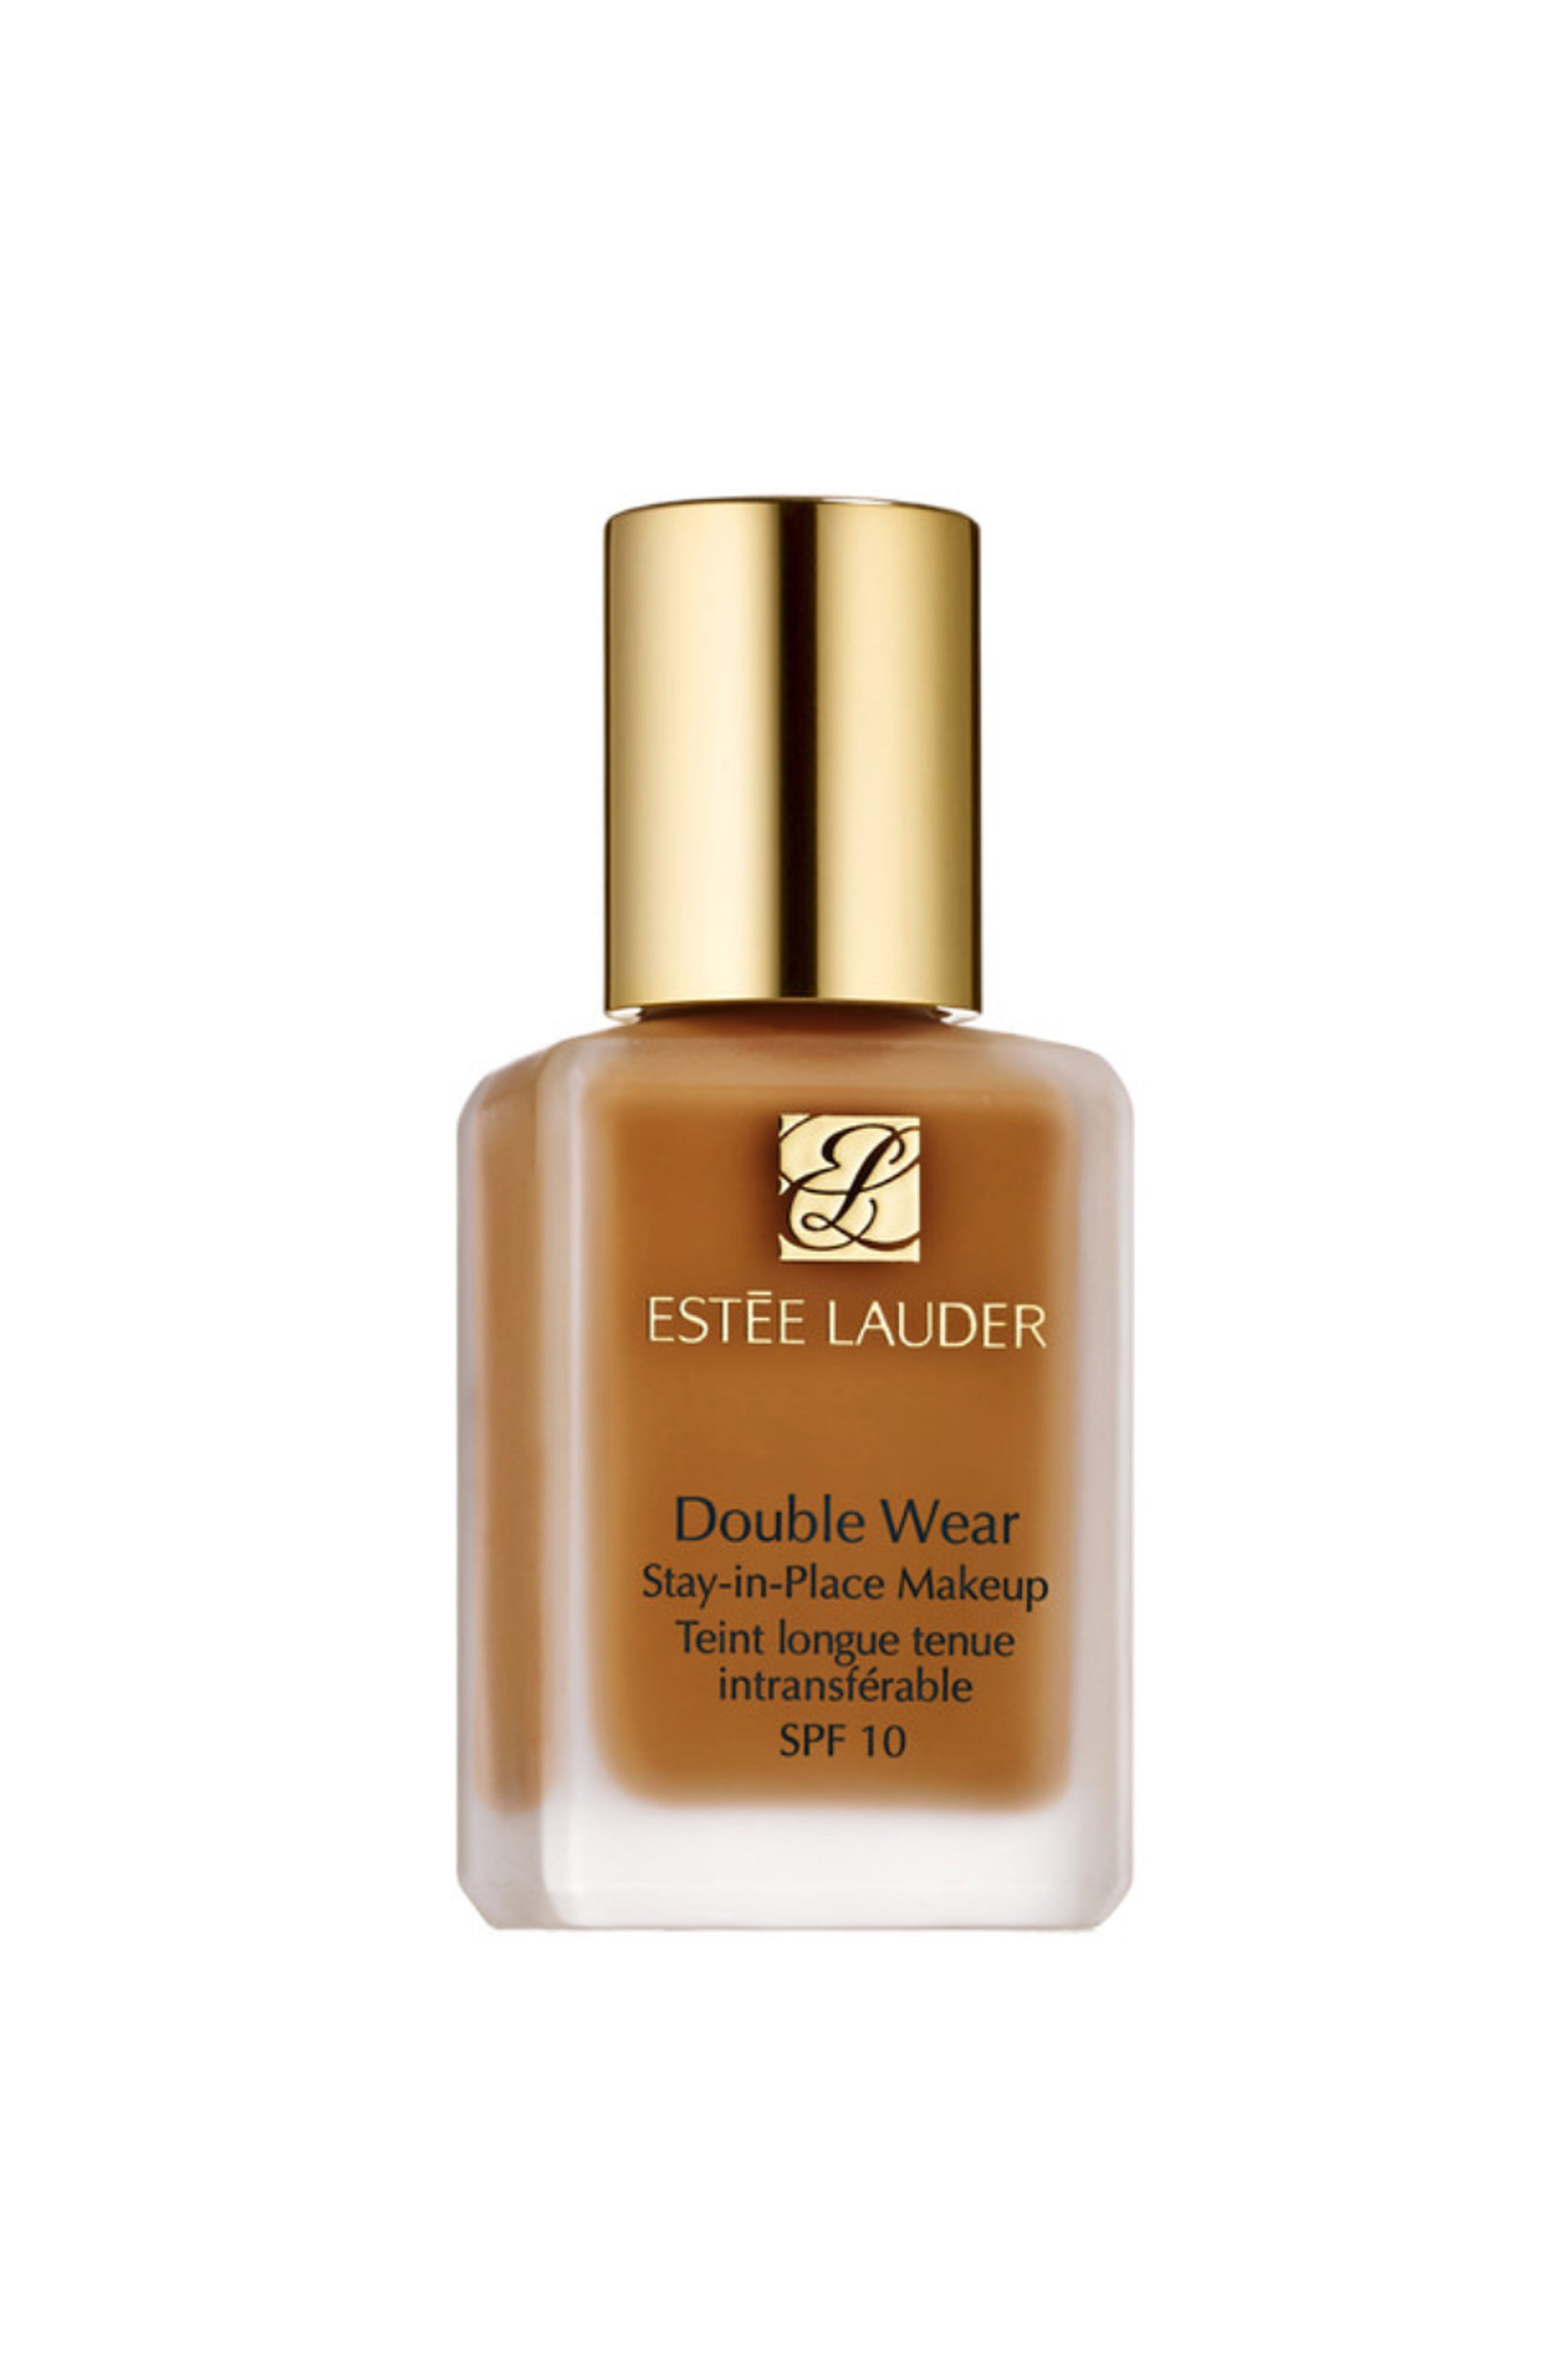 ESTÉE LAUDER Double Wear Stay-in-Place Makeup SPF 10 5N2 Amber Honey - Life Pharmacy St Lukes